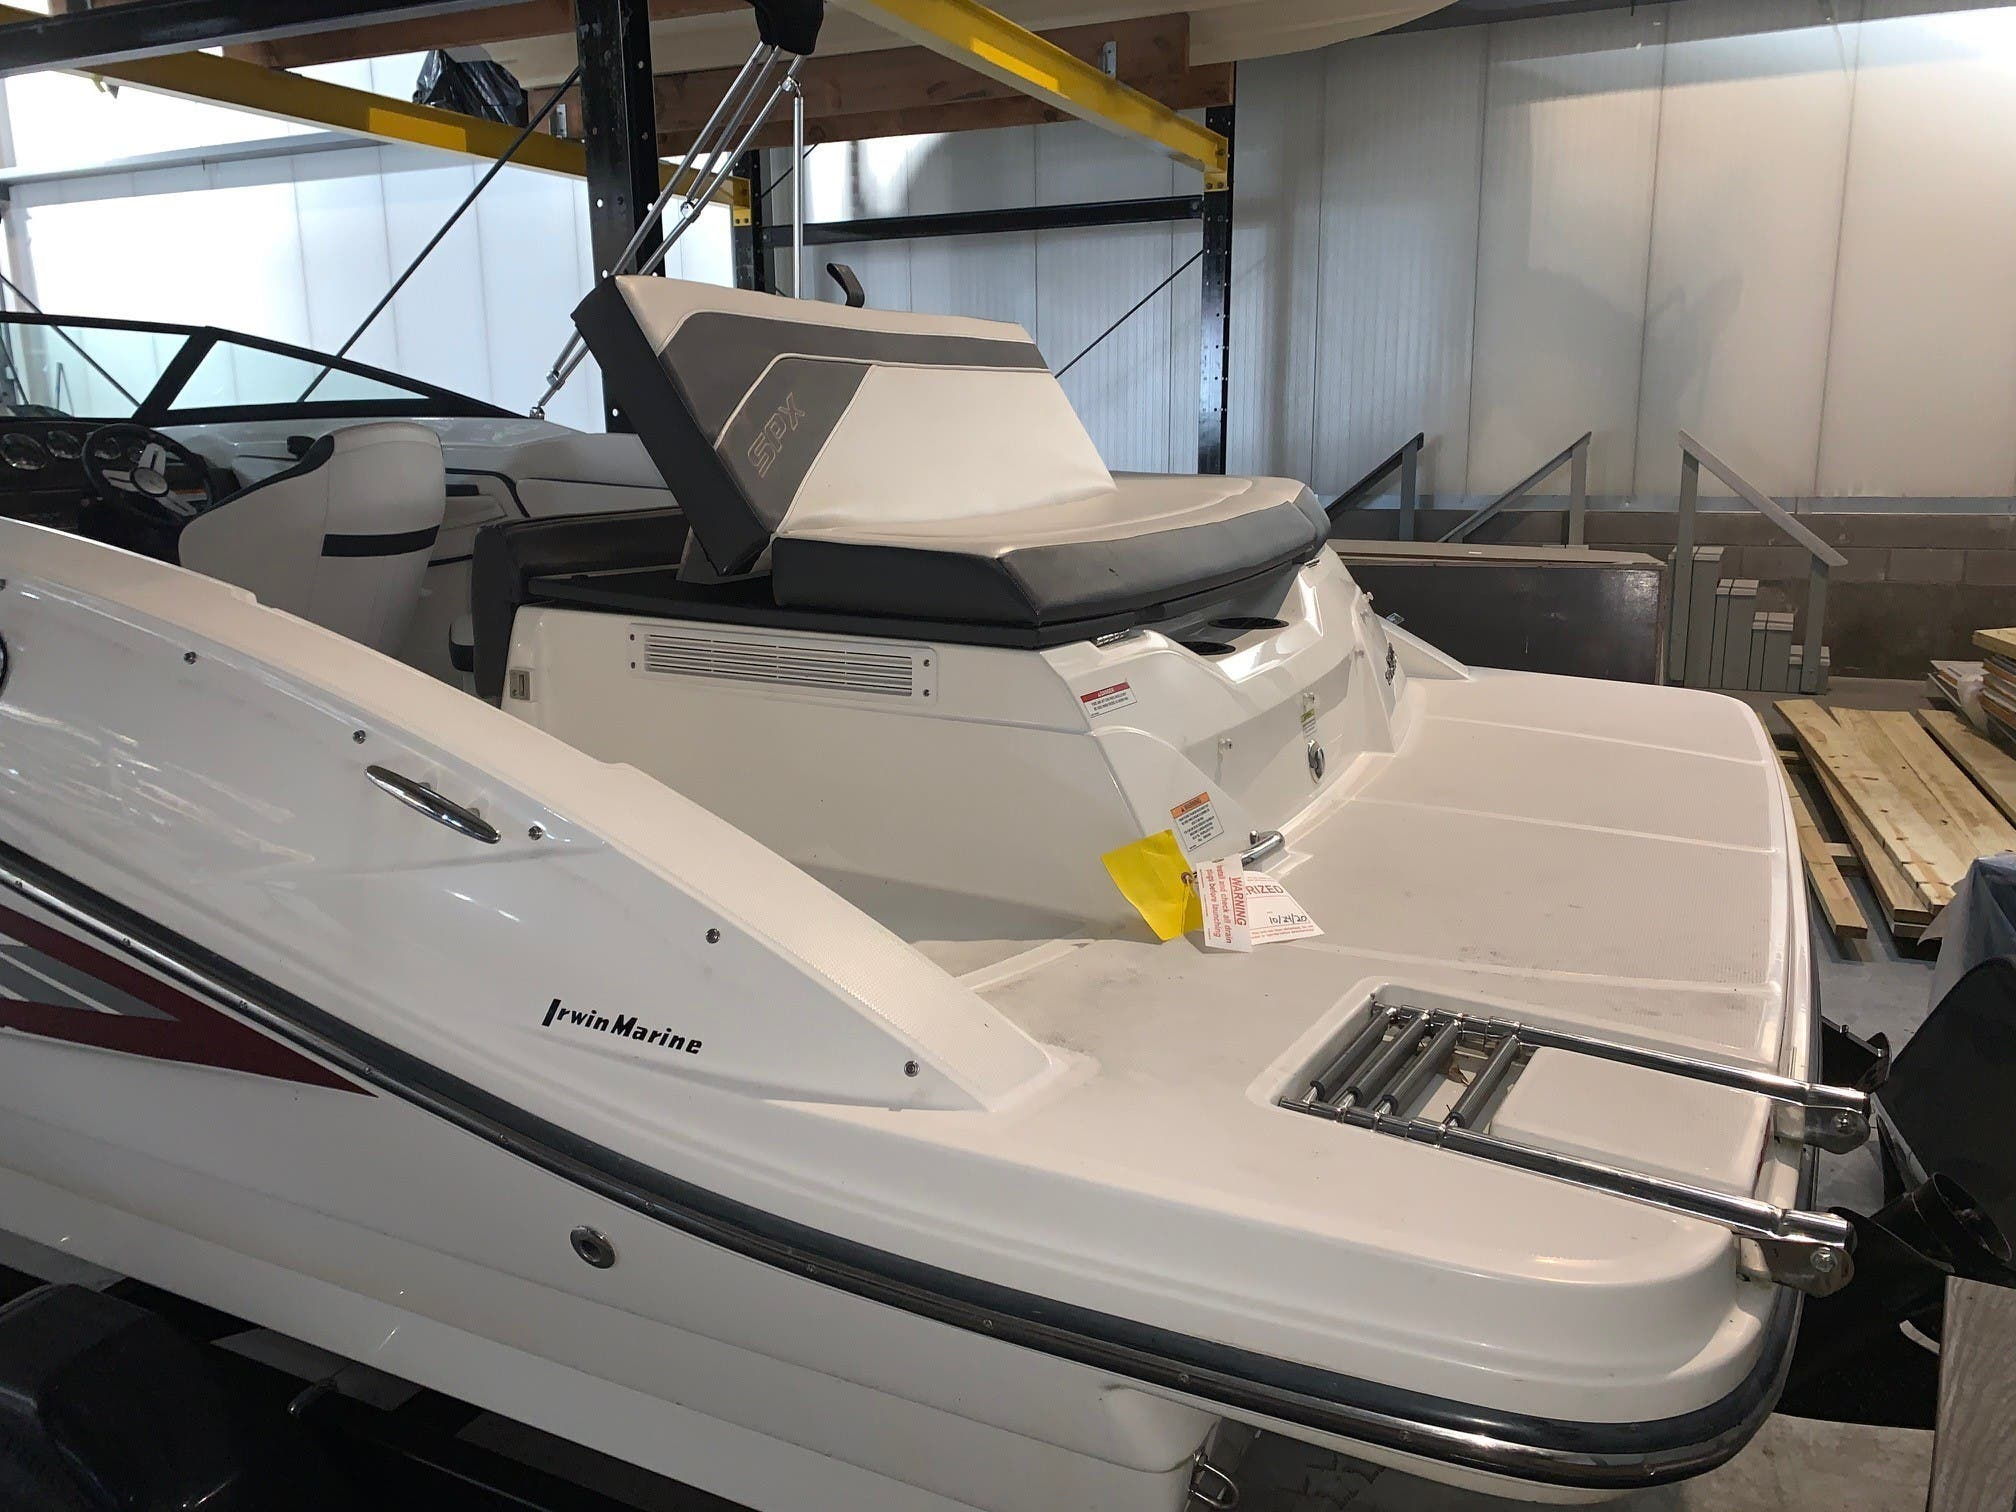 2016 Sea Ray boat for sale, model of the boat is 210spx & Image # 7 of 8